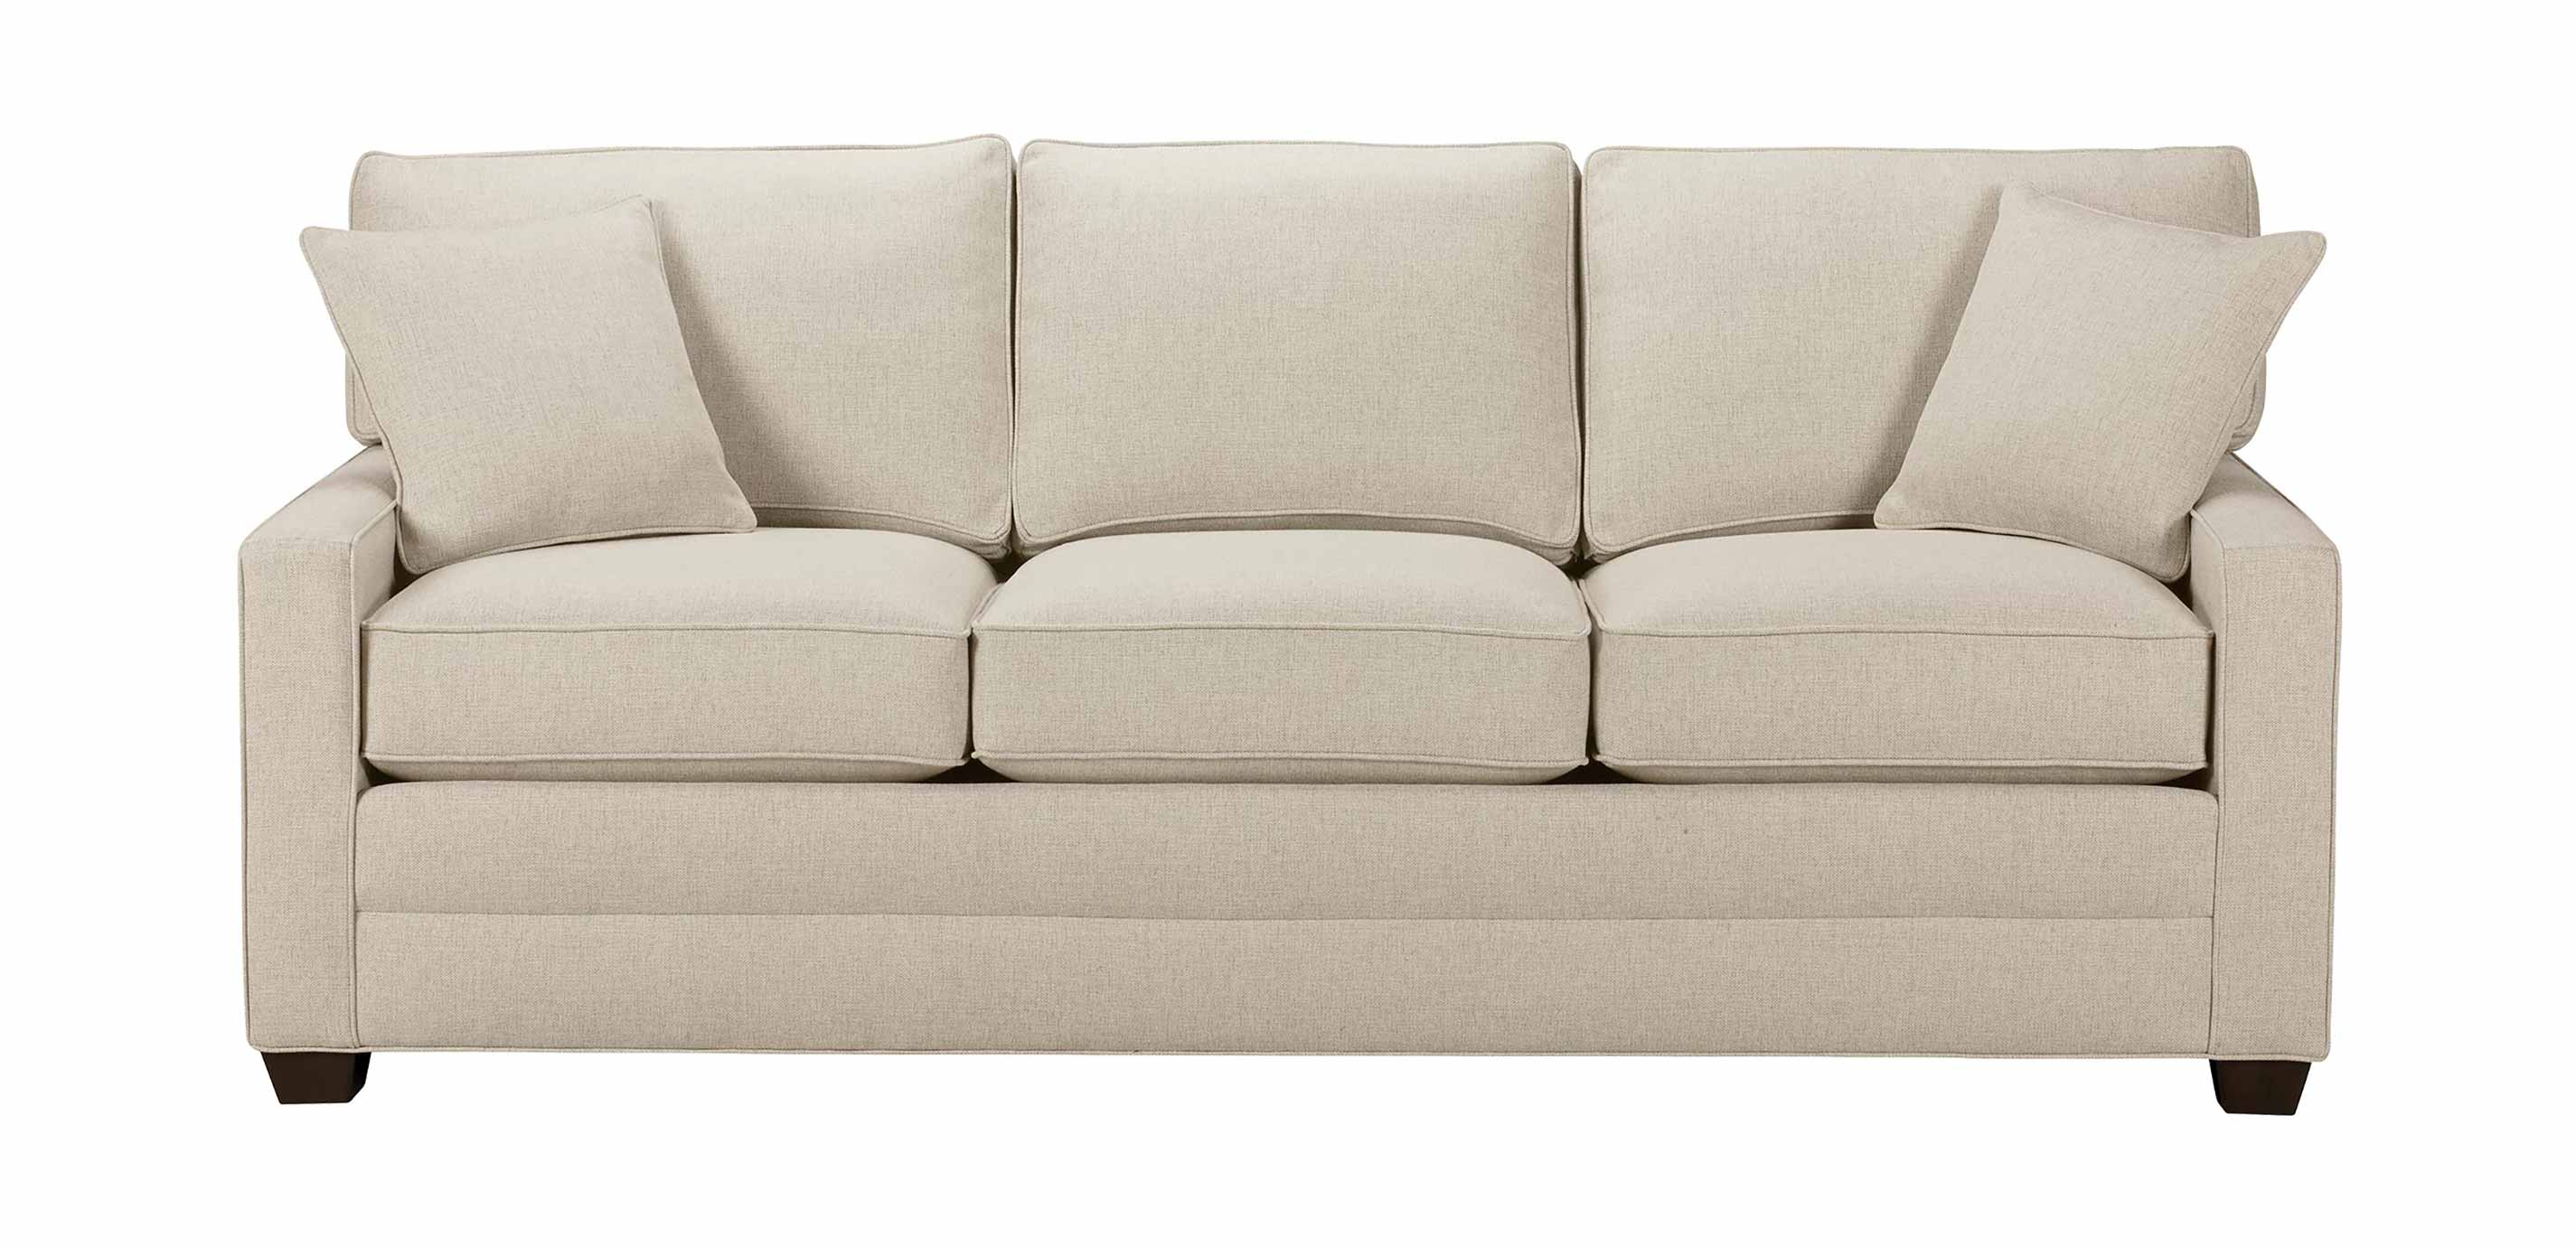 Sleeper Sofa Quick Delivery Bennett Track Arm Sofas Quick Ship Sofas Loveseats Ethan Allen